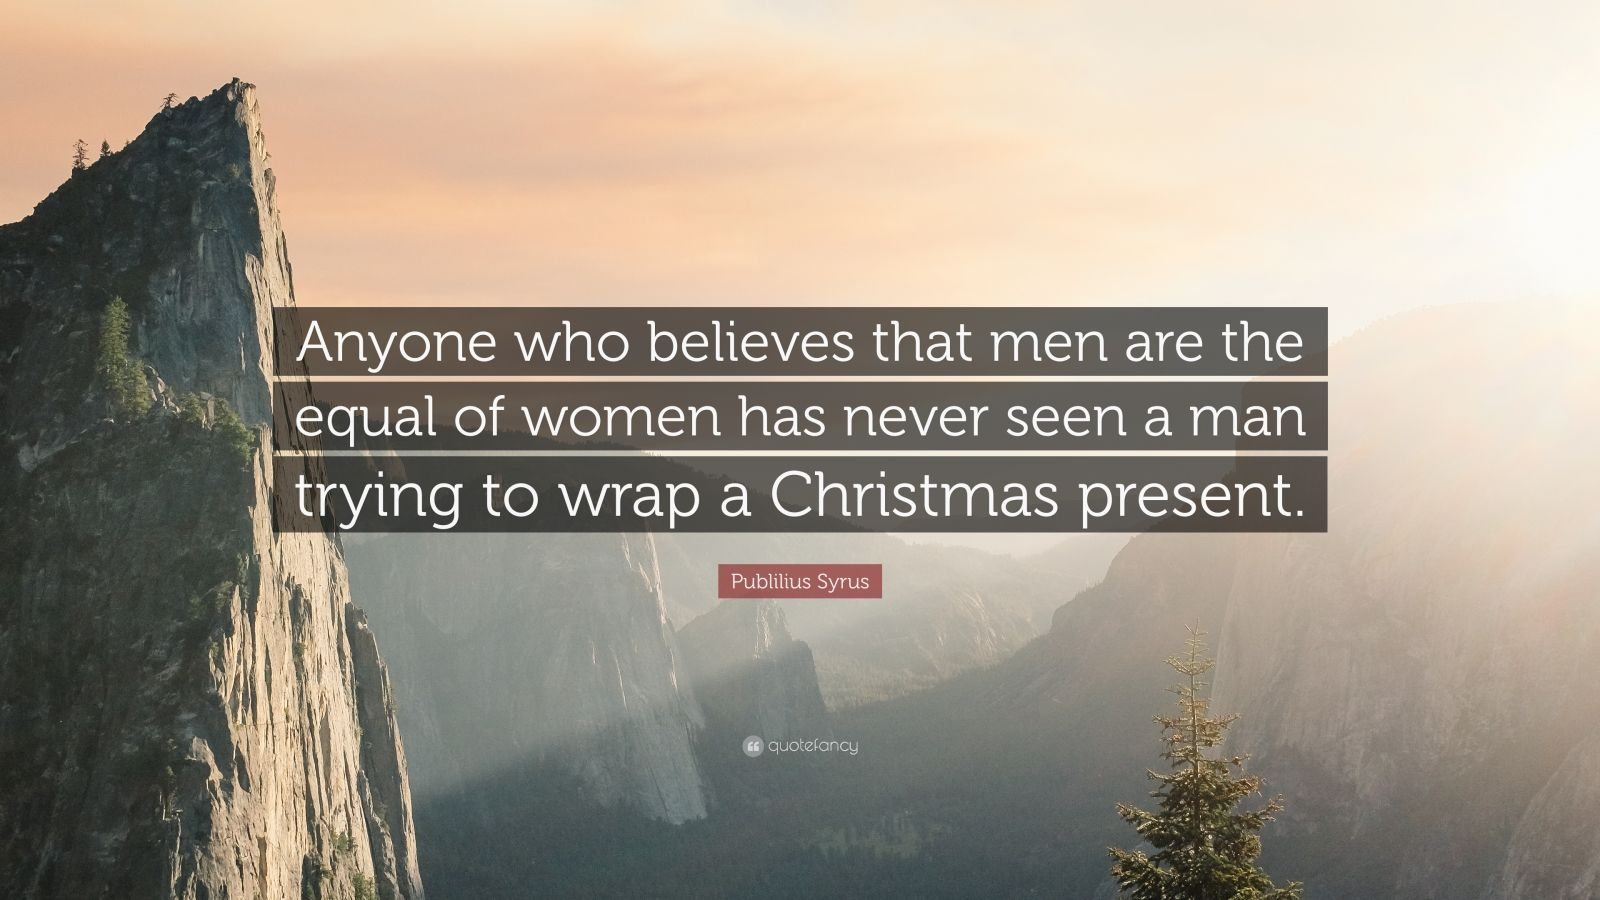 """Publilius Syrus Quote: """"Anyone who believes that men are the equal of women has never seen a man trying to wrap a Christmas present."""""""